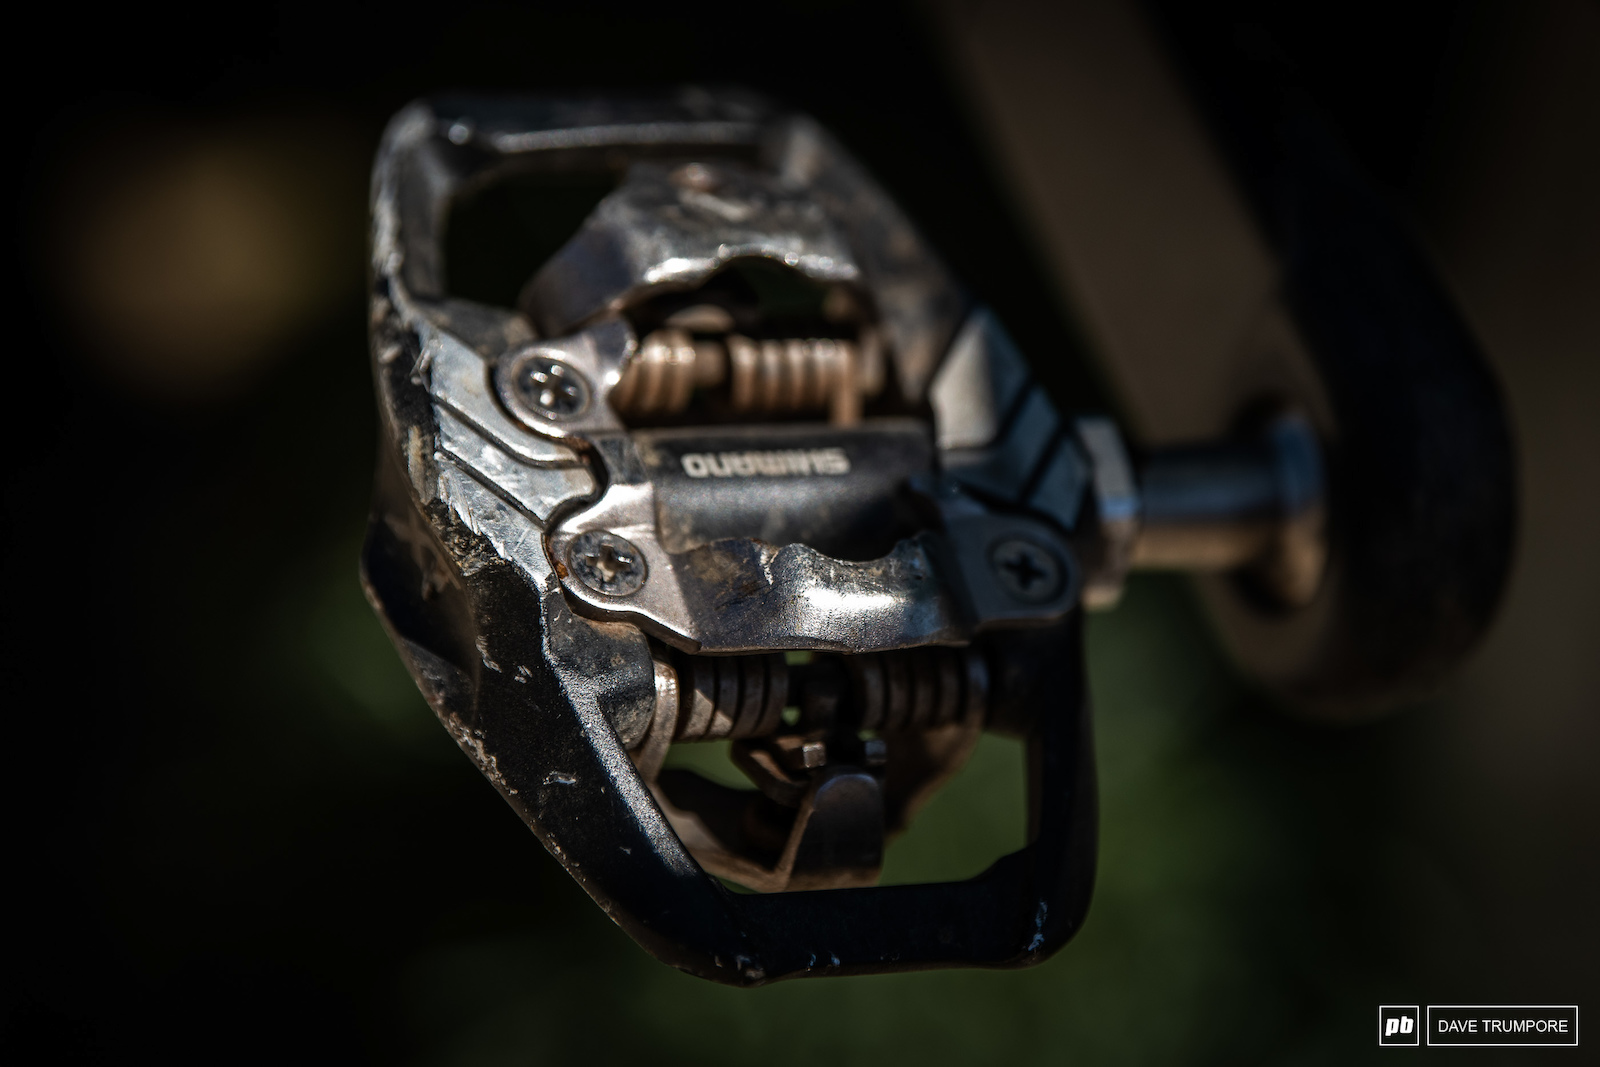 Good old Shimano XT pedals with the tension one turn from fully tight.